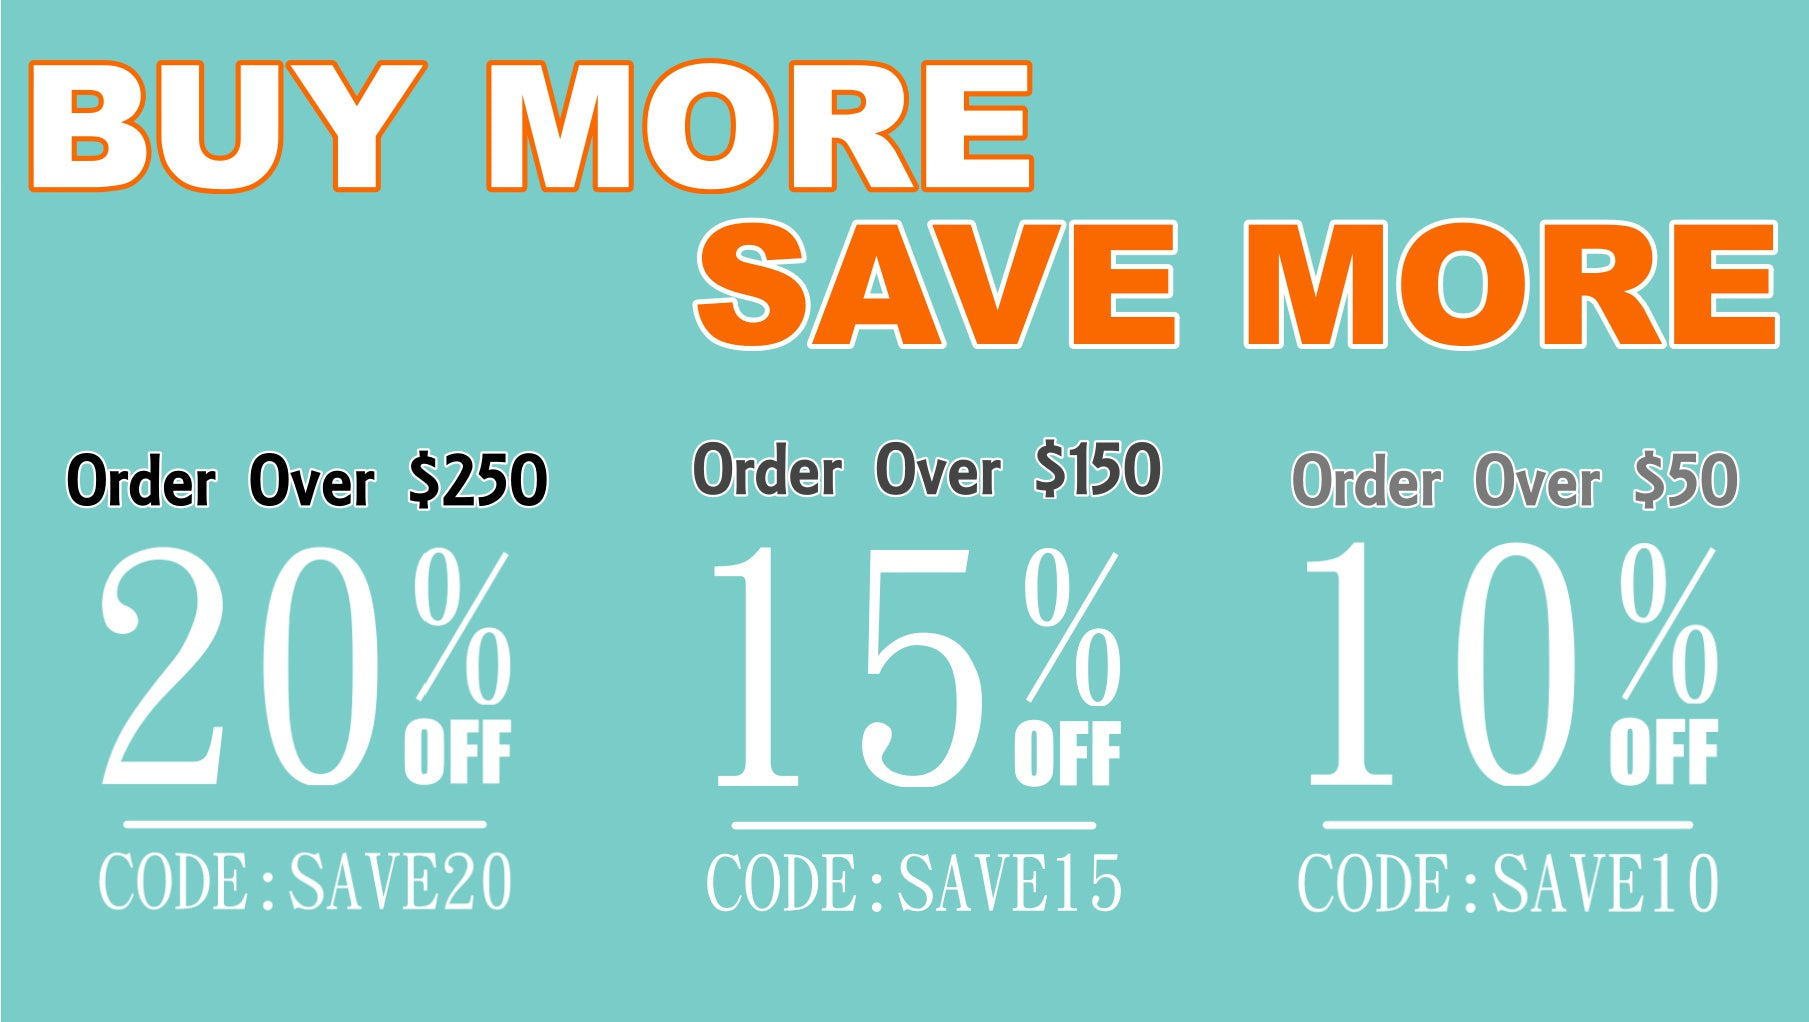 Discounts, Promo Codes & Offers | BUY MORE SAVE MORE SUPPLY4BAG